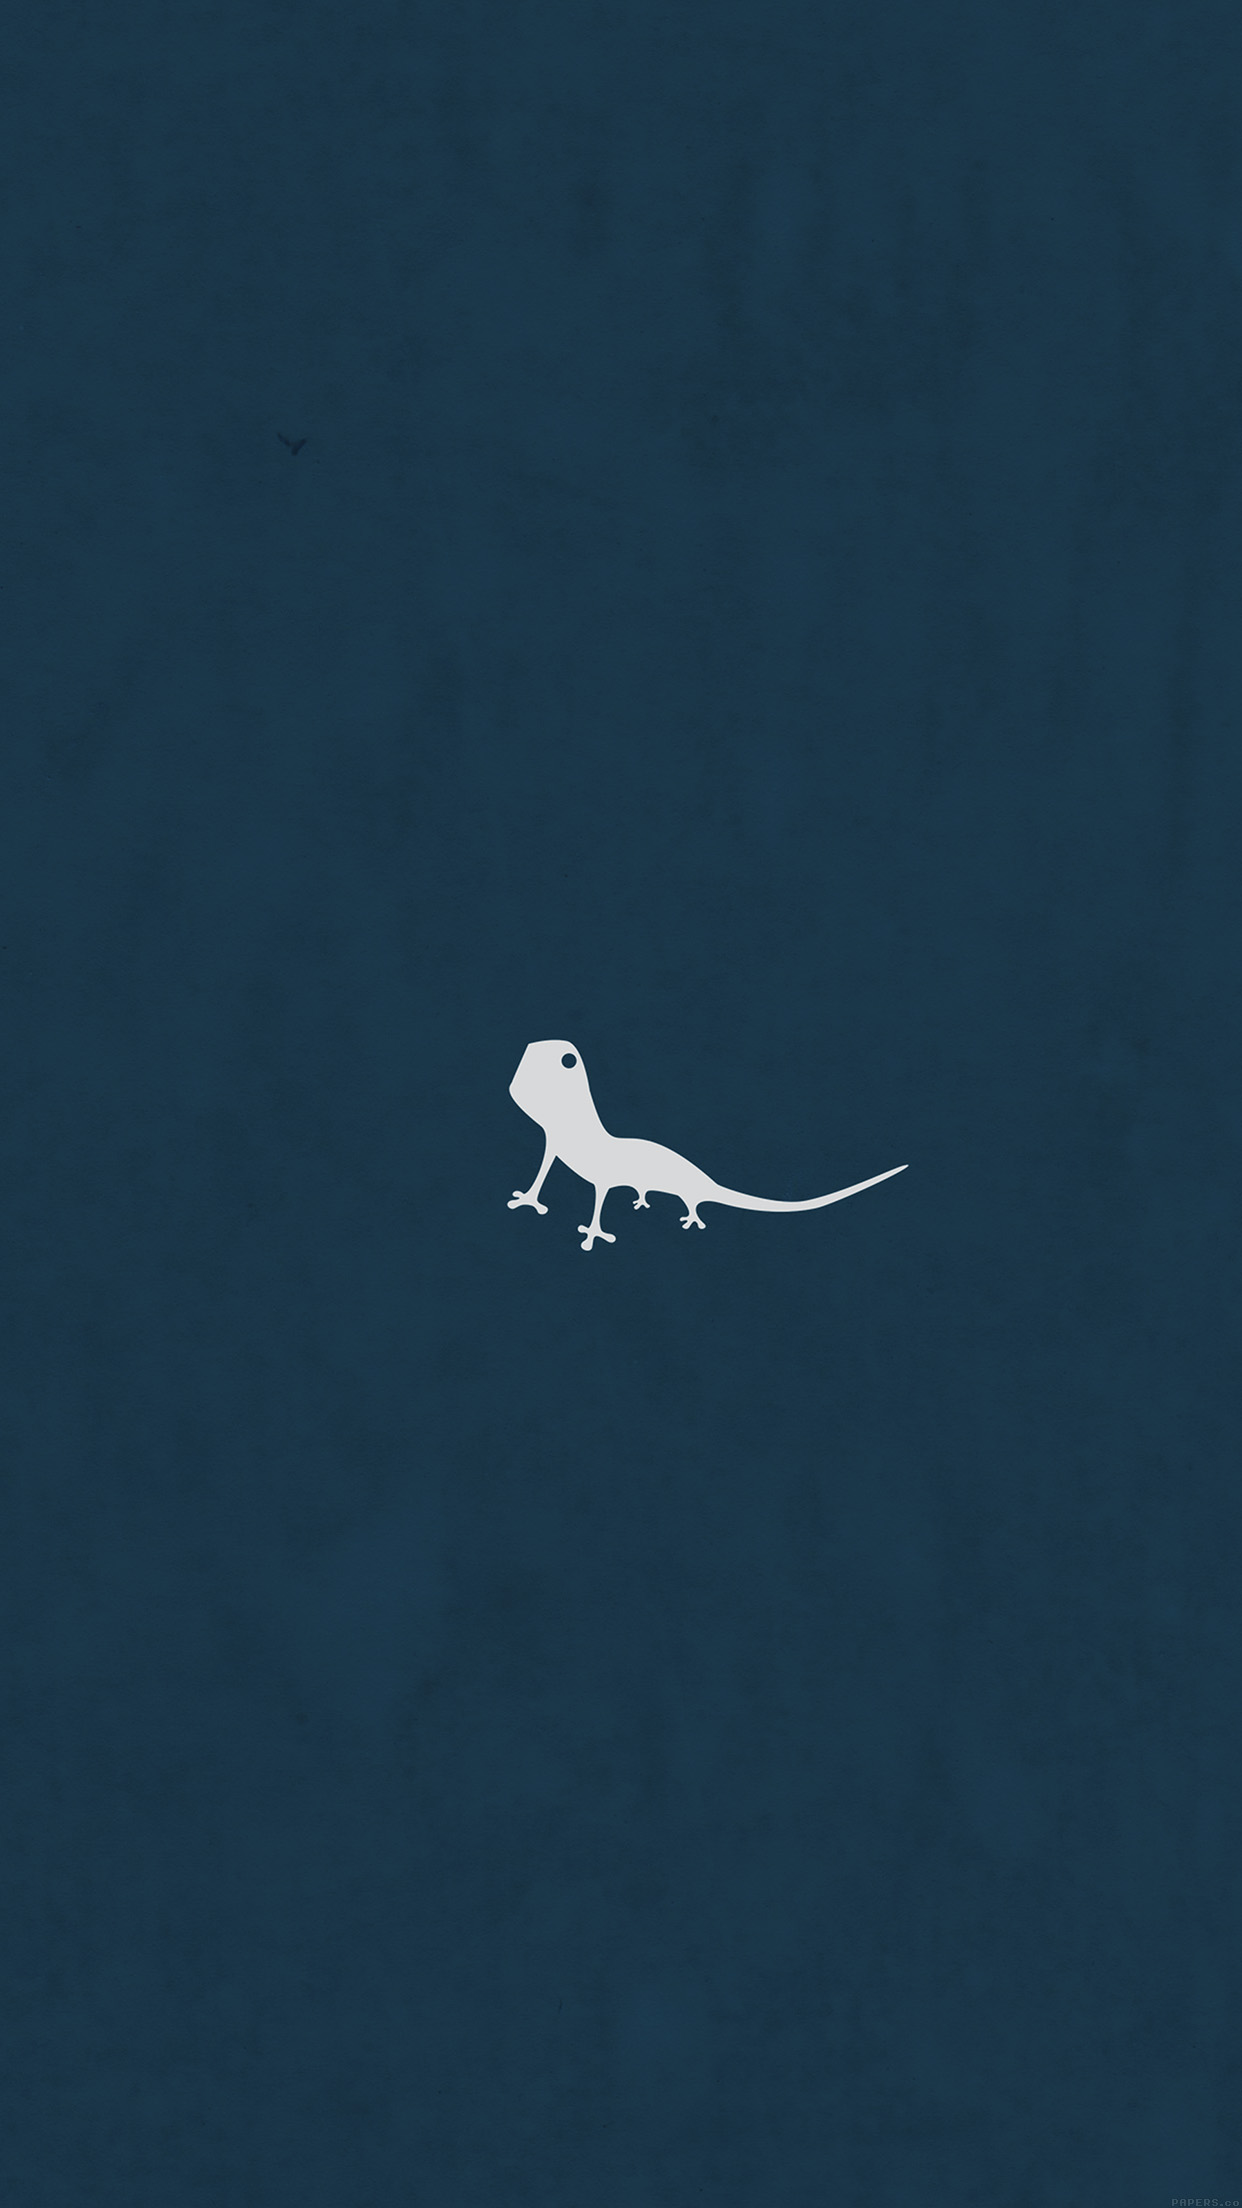 Iphonexpapers Ah55 Lizard Blue Animal Minimal Simple Art